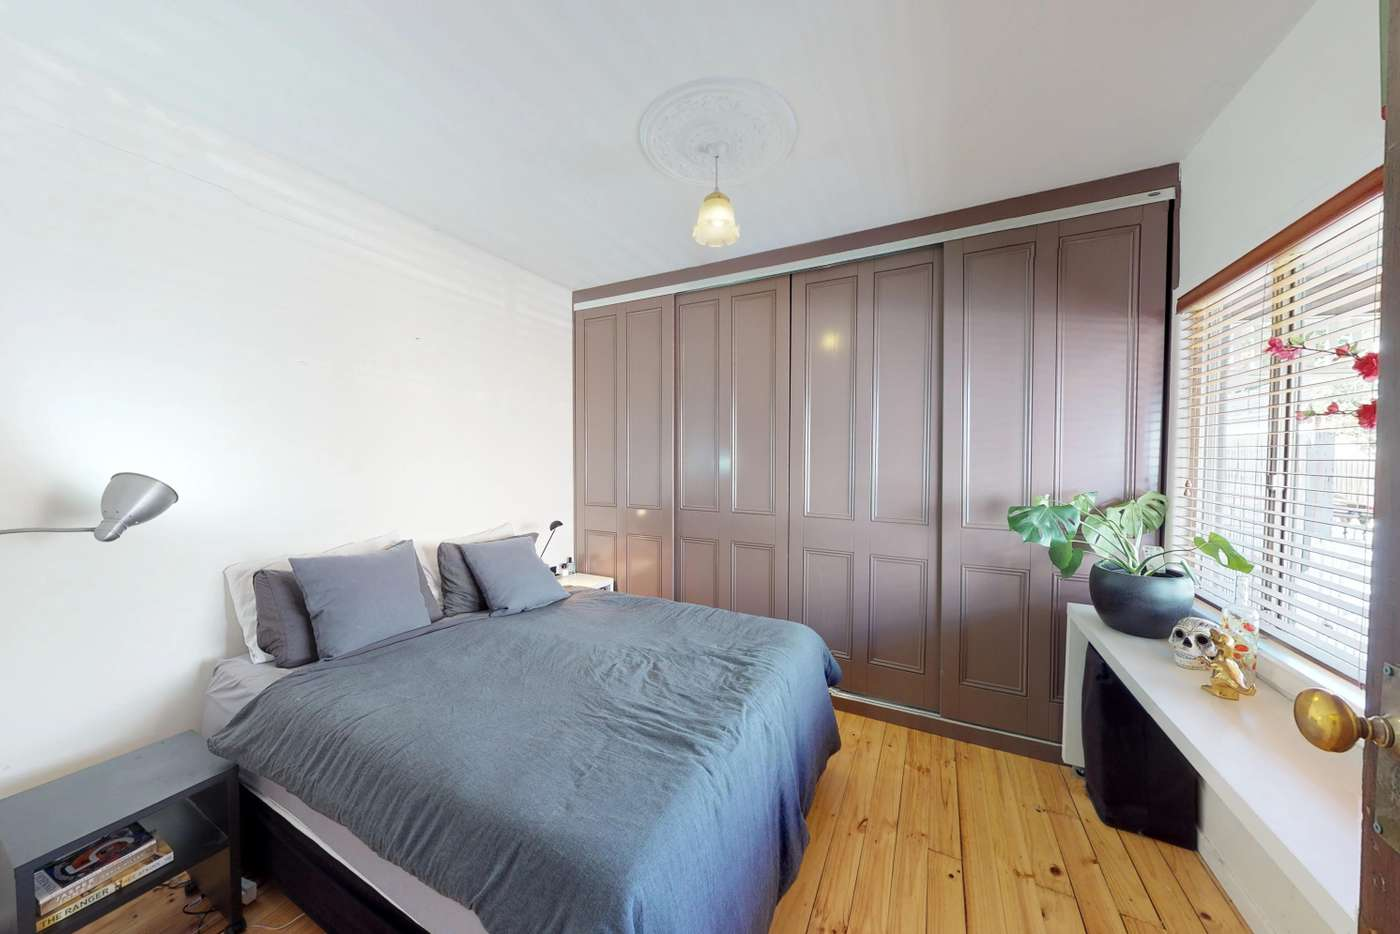 Fifth view of Homely house listing, 13 Sheedy  Street, Richmond VIC 3121